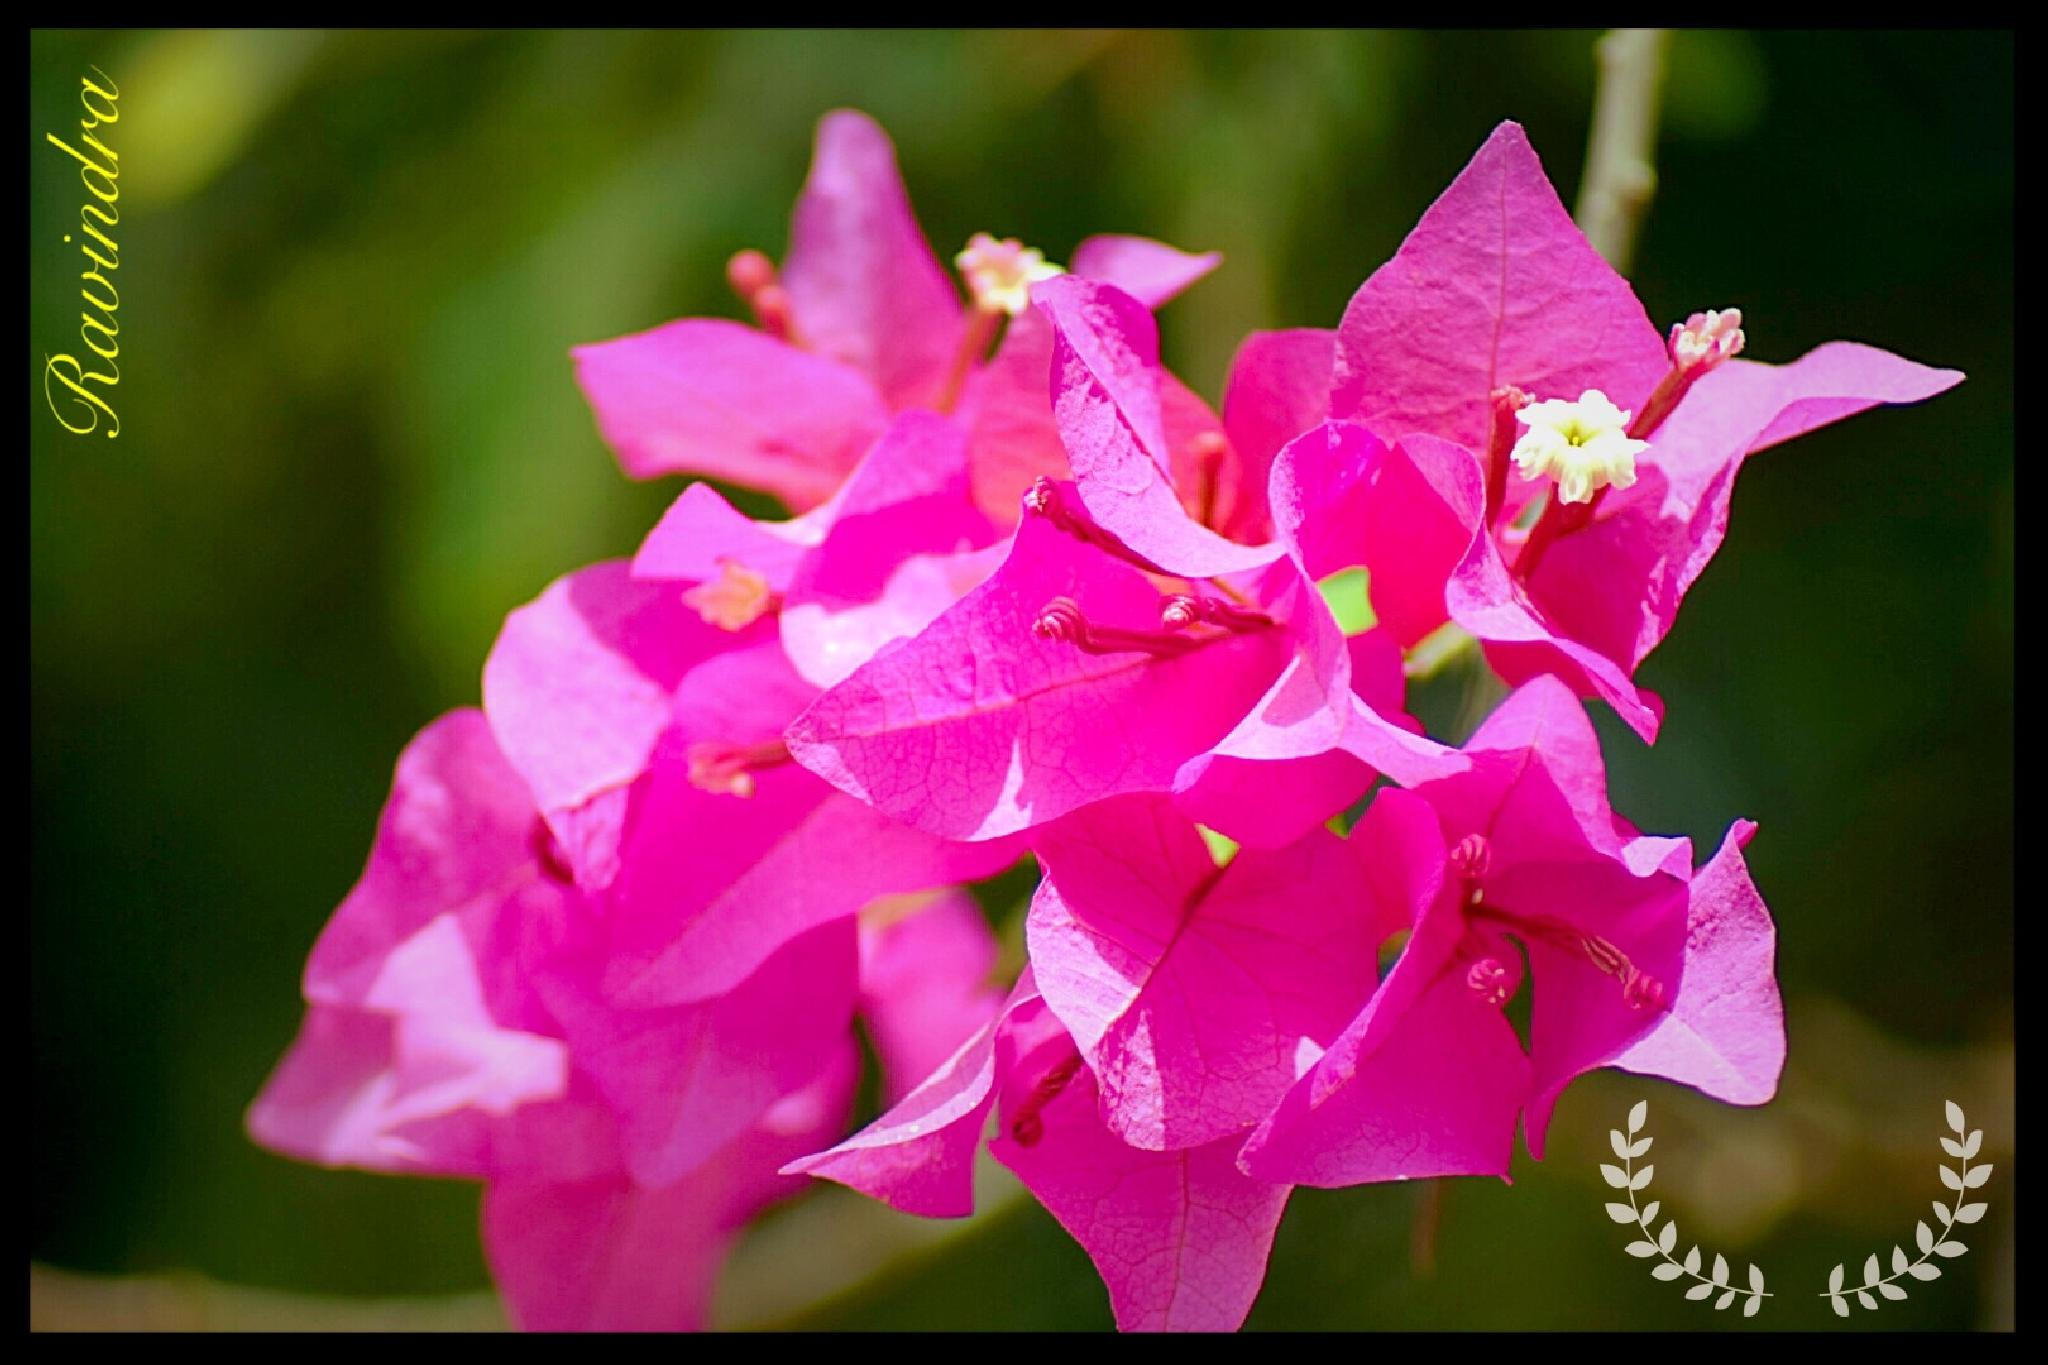 Flowers of Boganvail by Ravi